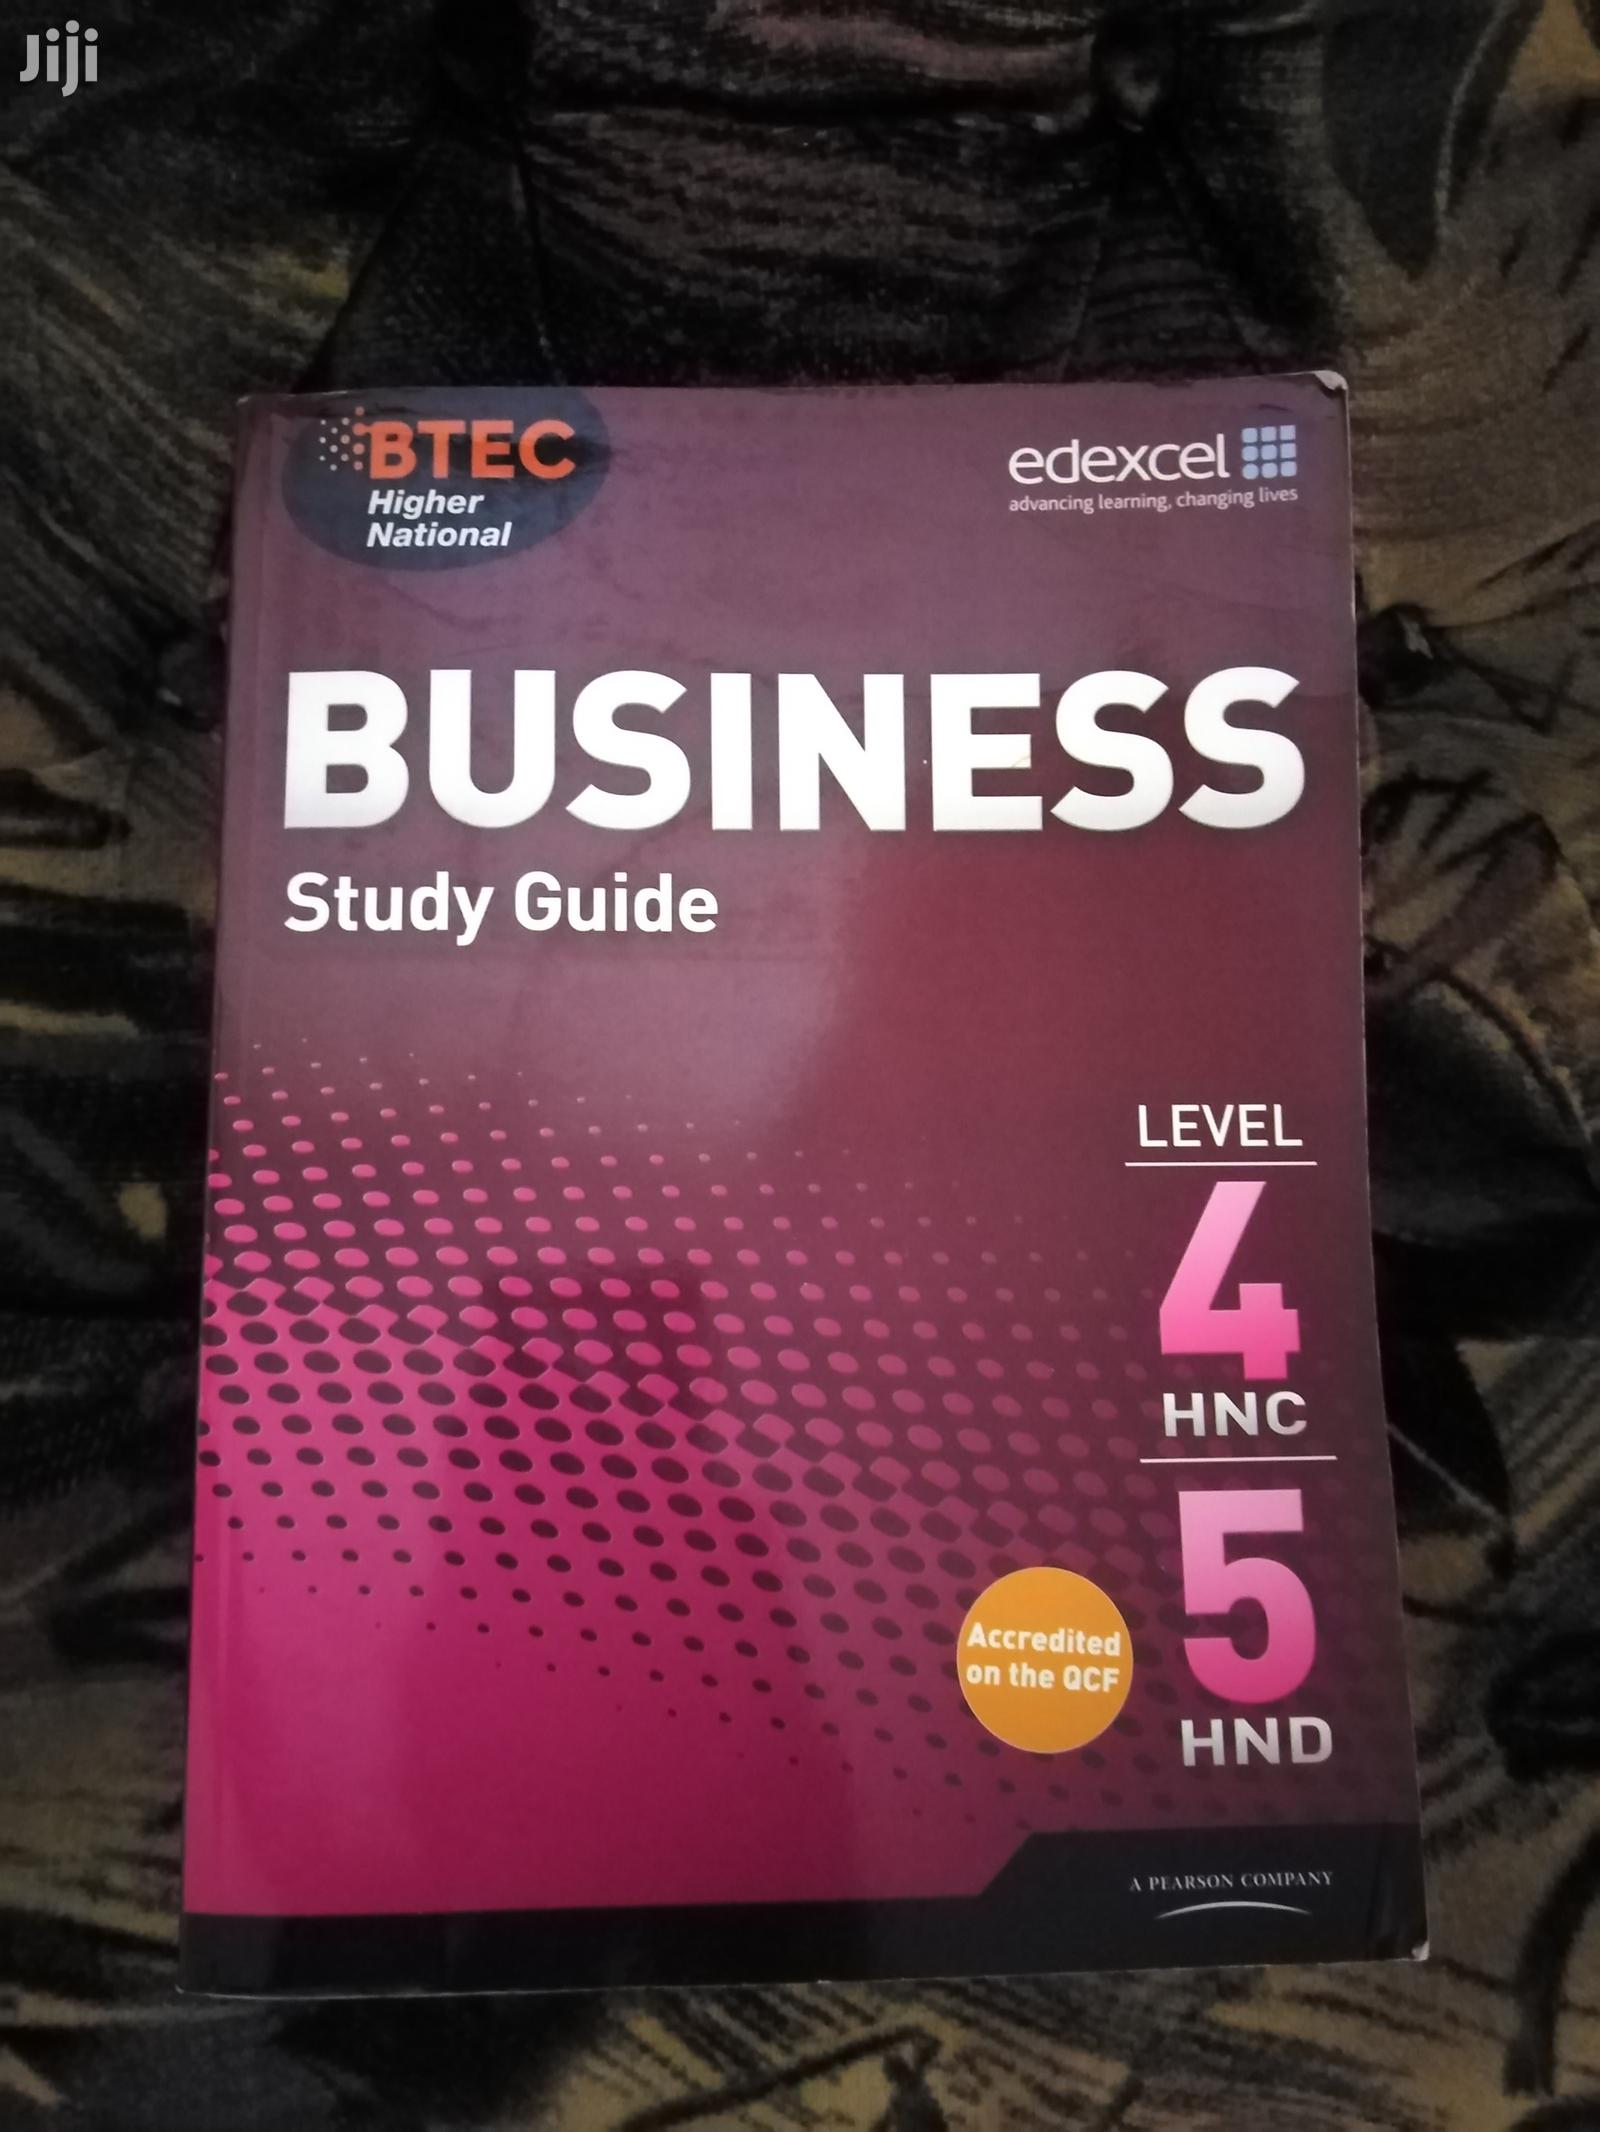 Edexcel Business BTEC Level 4 And Level 5 Book